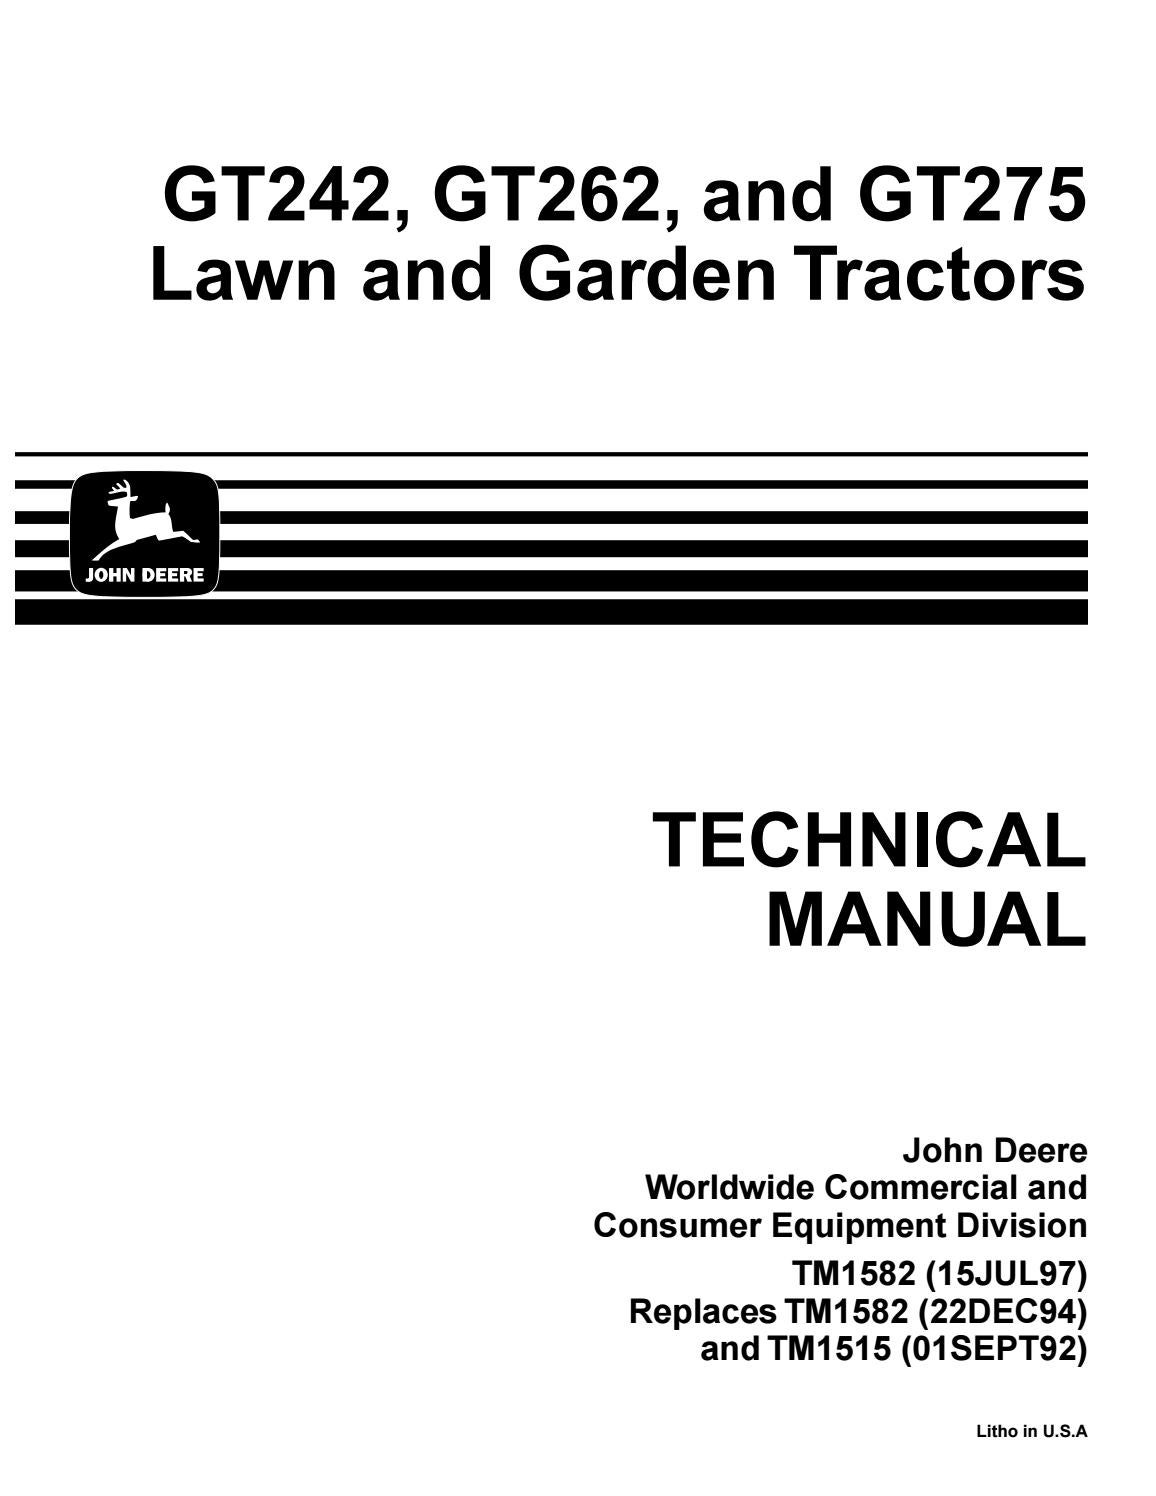 hight resolution of john deere gt275 lawn garden tractor service repair manual by ujfjisefjj issuu